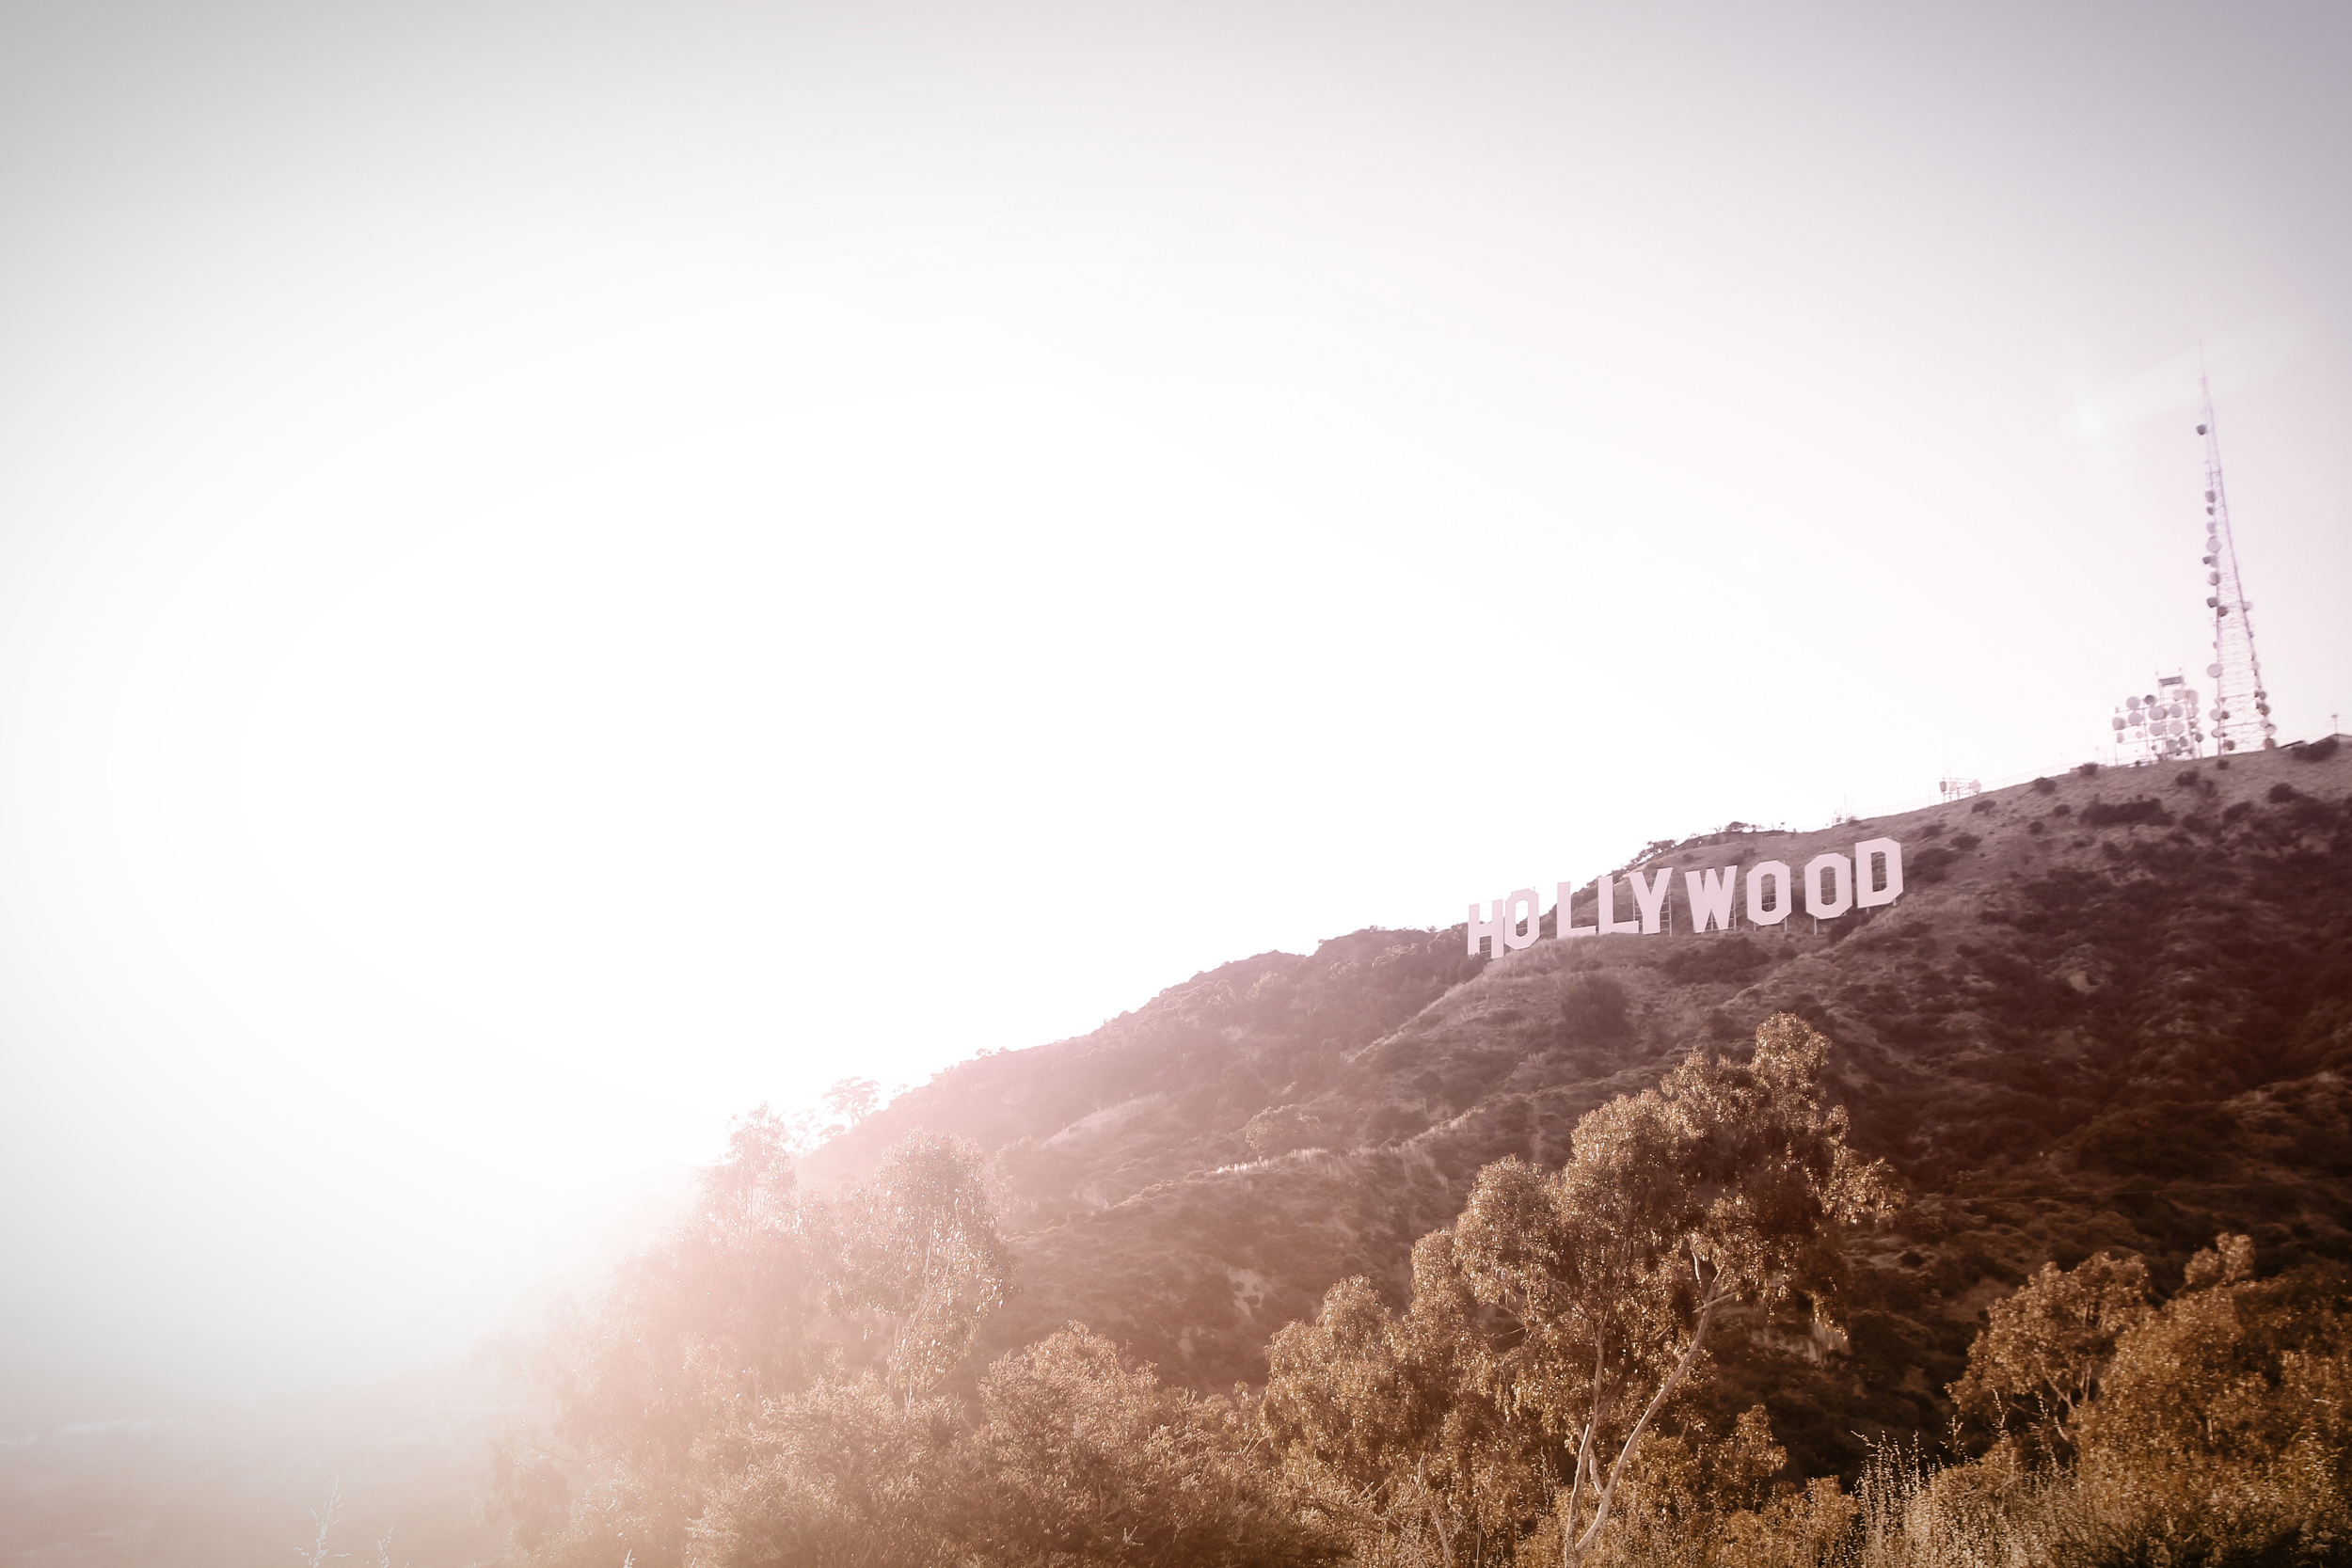 A misty shot of the Hollywood sign on the hillside with a pylon on the crest